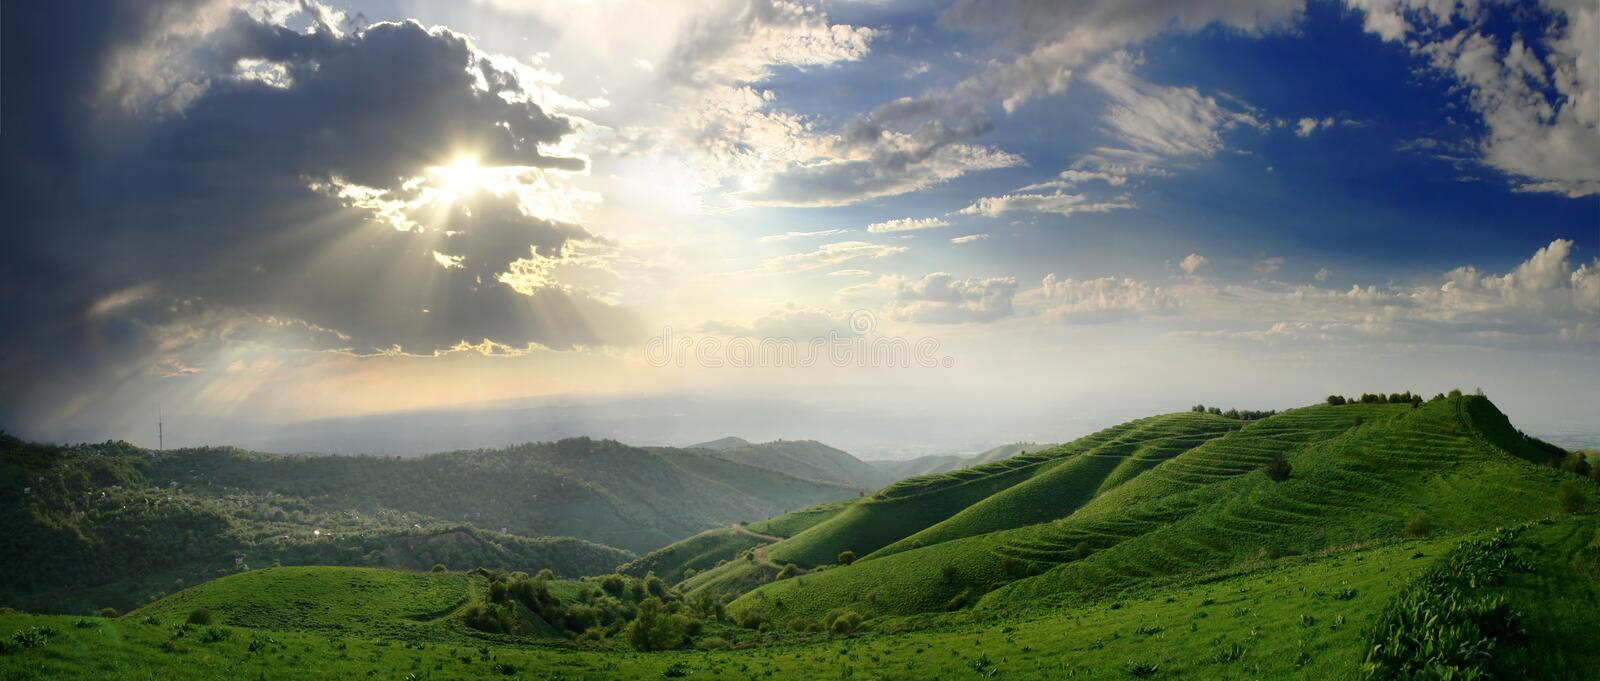 Clouds, sunbeam and hills stock photos